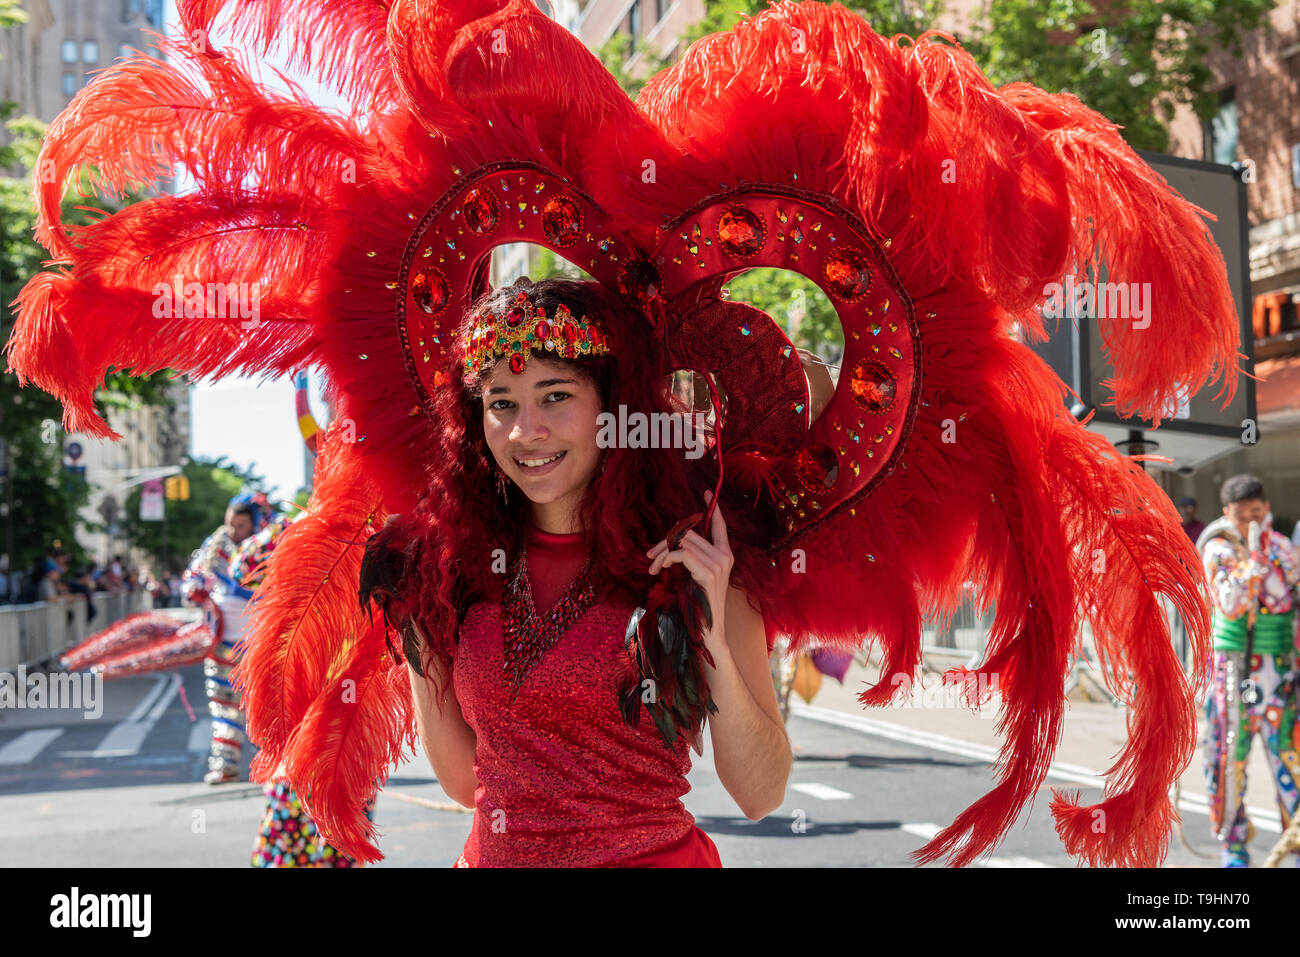 New York, USA. 18th May, 2019. On May 18, 2019 around 10,000 dancers, DJs, and live bands danced down Broadway through Union Square, University Place and across East 8th Street ending the parade at Avenue A in Manhattan, NY. This year's theme 'Movement of the People' countered the political negativity and showed that dance unifies people from different cultural backgrounds. Credit: Gabriele Holtermann-Gorden/Pacific Press/Alamy Live News - Stock Image